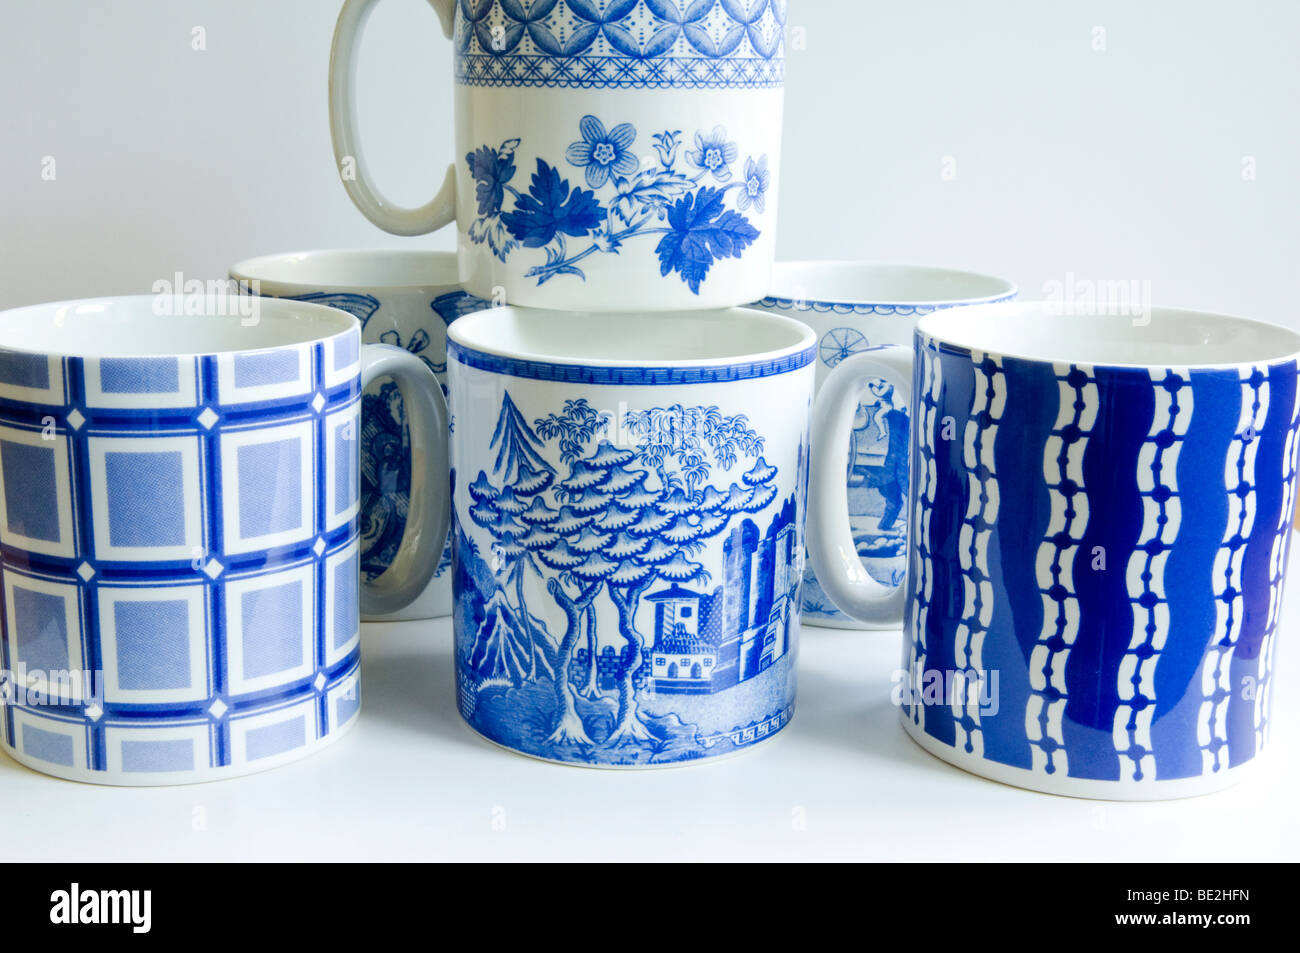 Spode Mugs from the Blue Room collection. - Stock Image